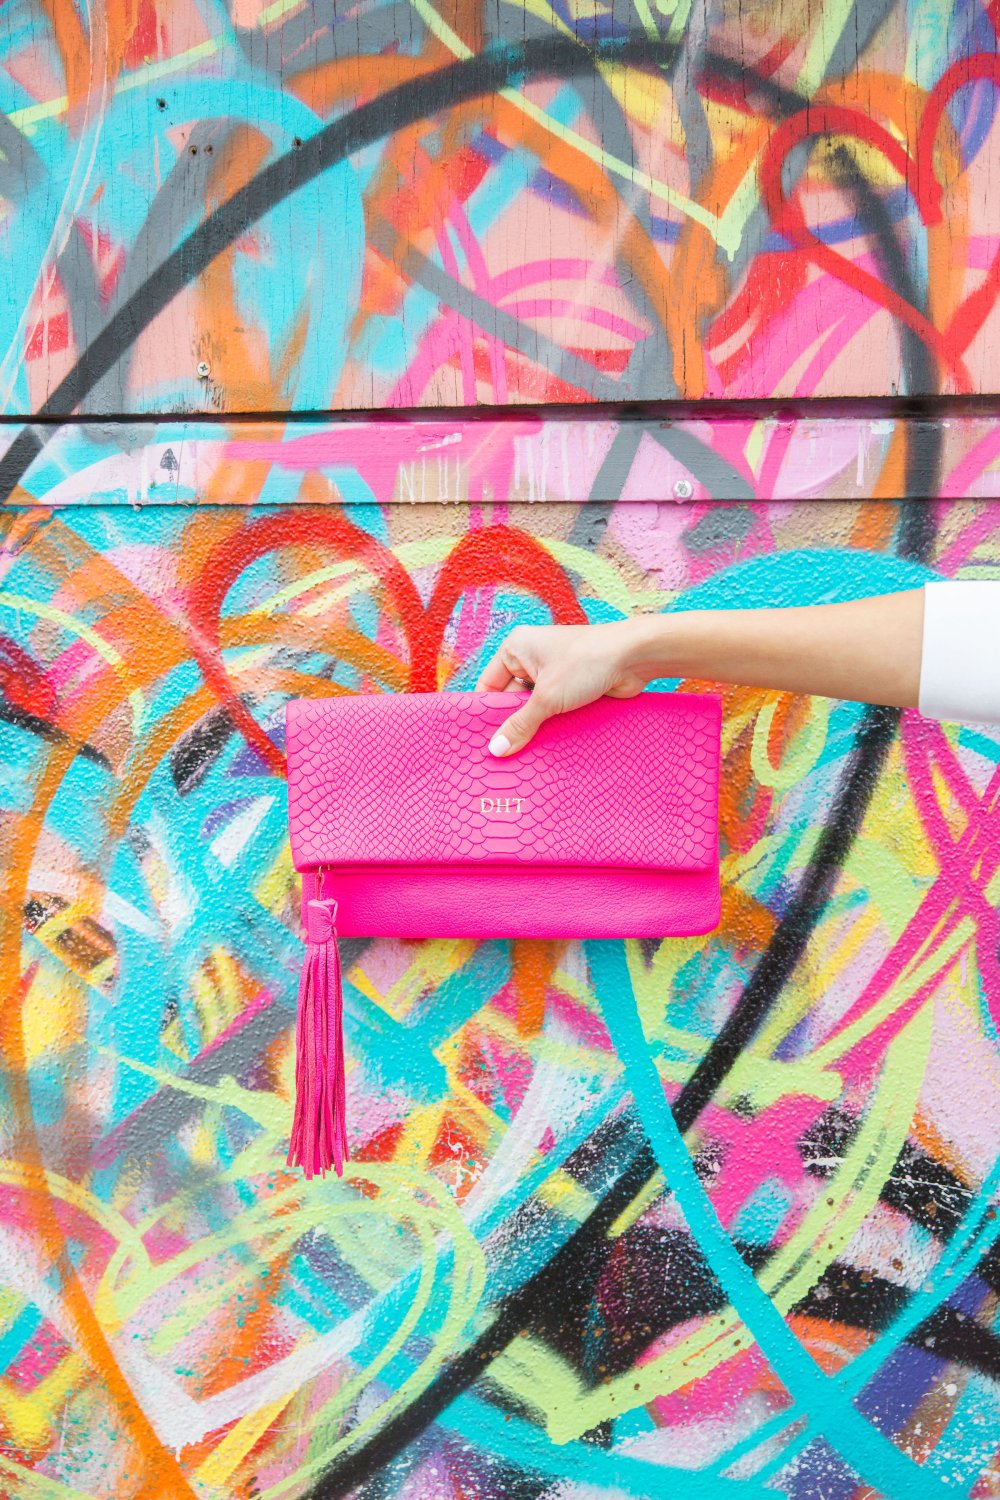 I am head over heels for this HOT PINK clutch! It adds a pop of fun to any outfit!